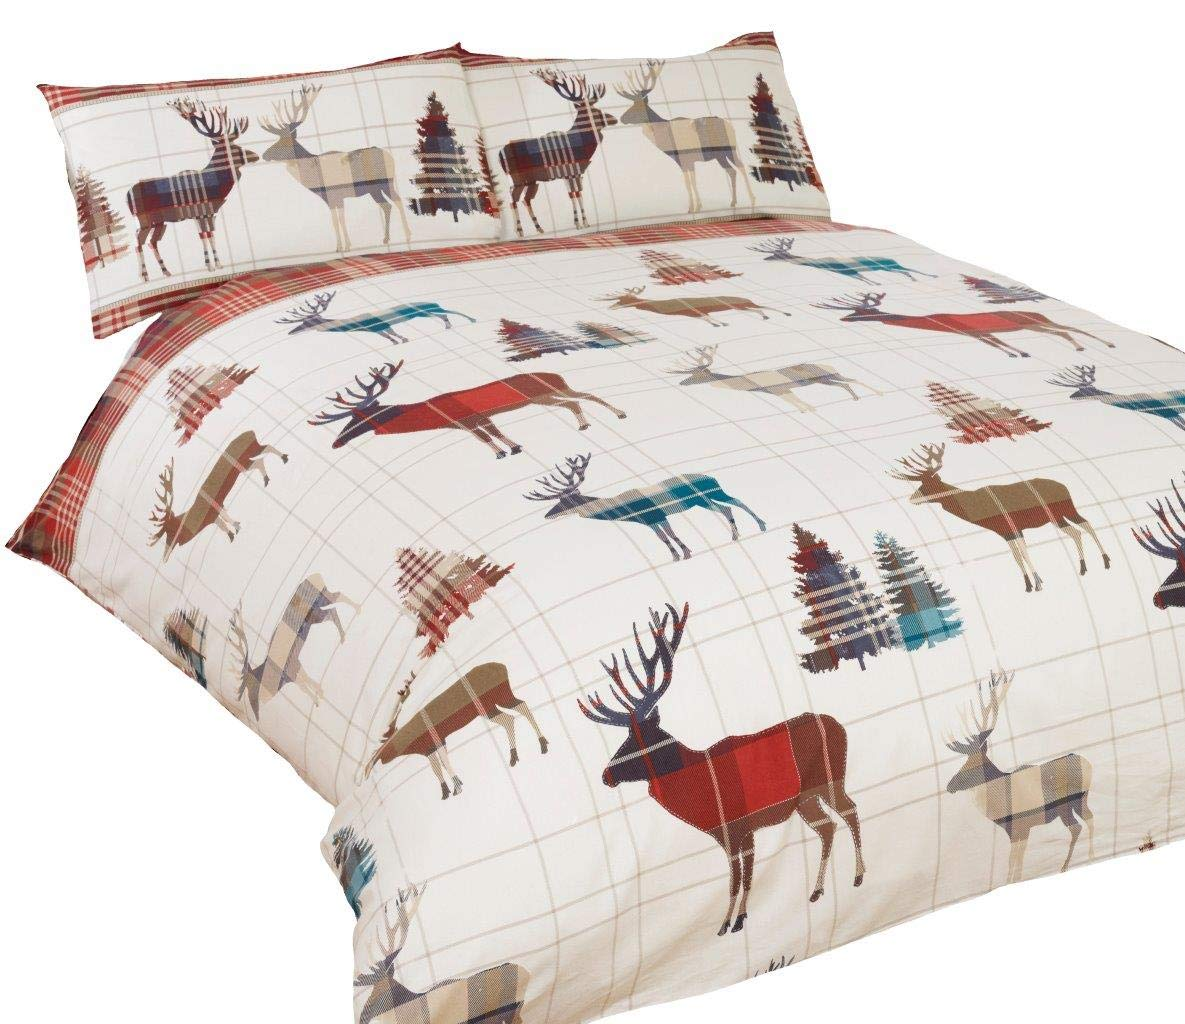 STAG TREE PLAID CHECK RED CREAM CANADIAN QUEEN SIZE (230CM X 220CM - UK KING SIZE) COTTON BLEND REVERSIBLE DUVET COMFORTER COVER Duvet Cover